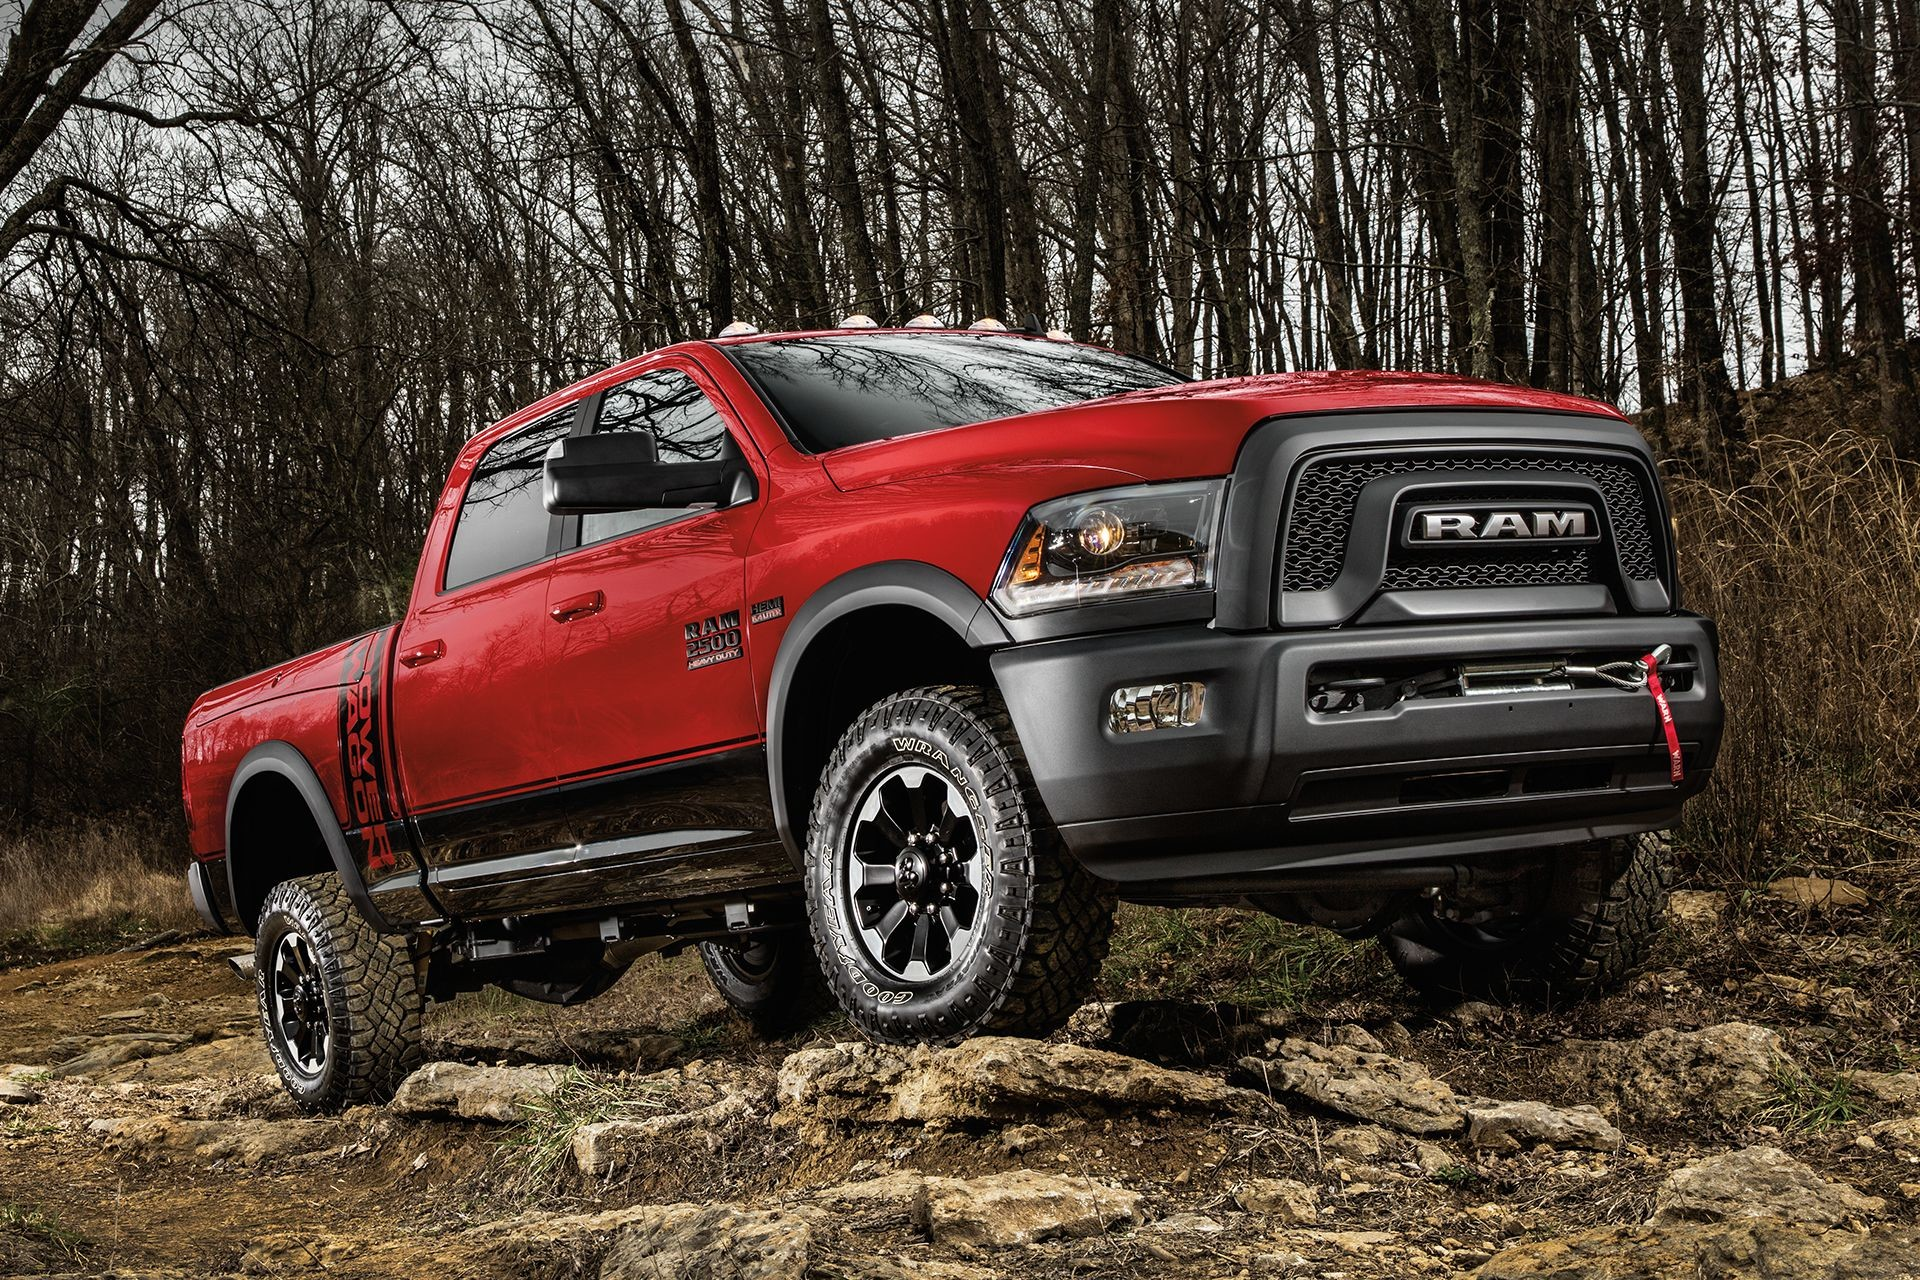 2018 RAM 2500 full-size off-road pickup truck